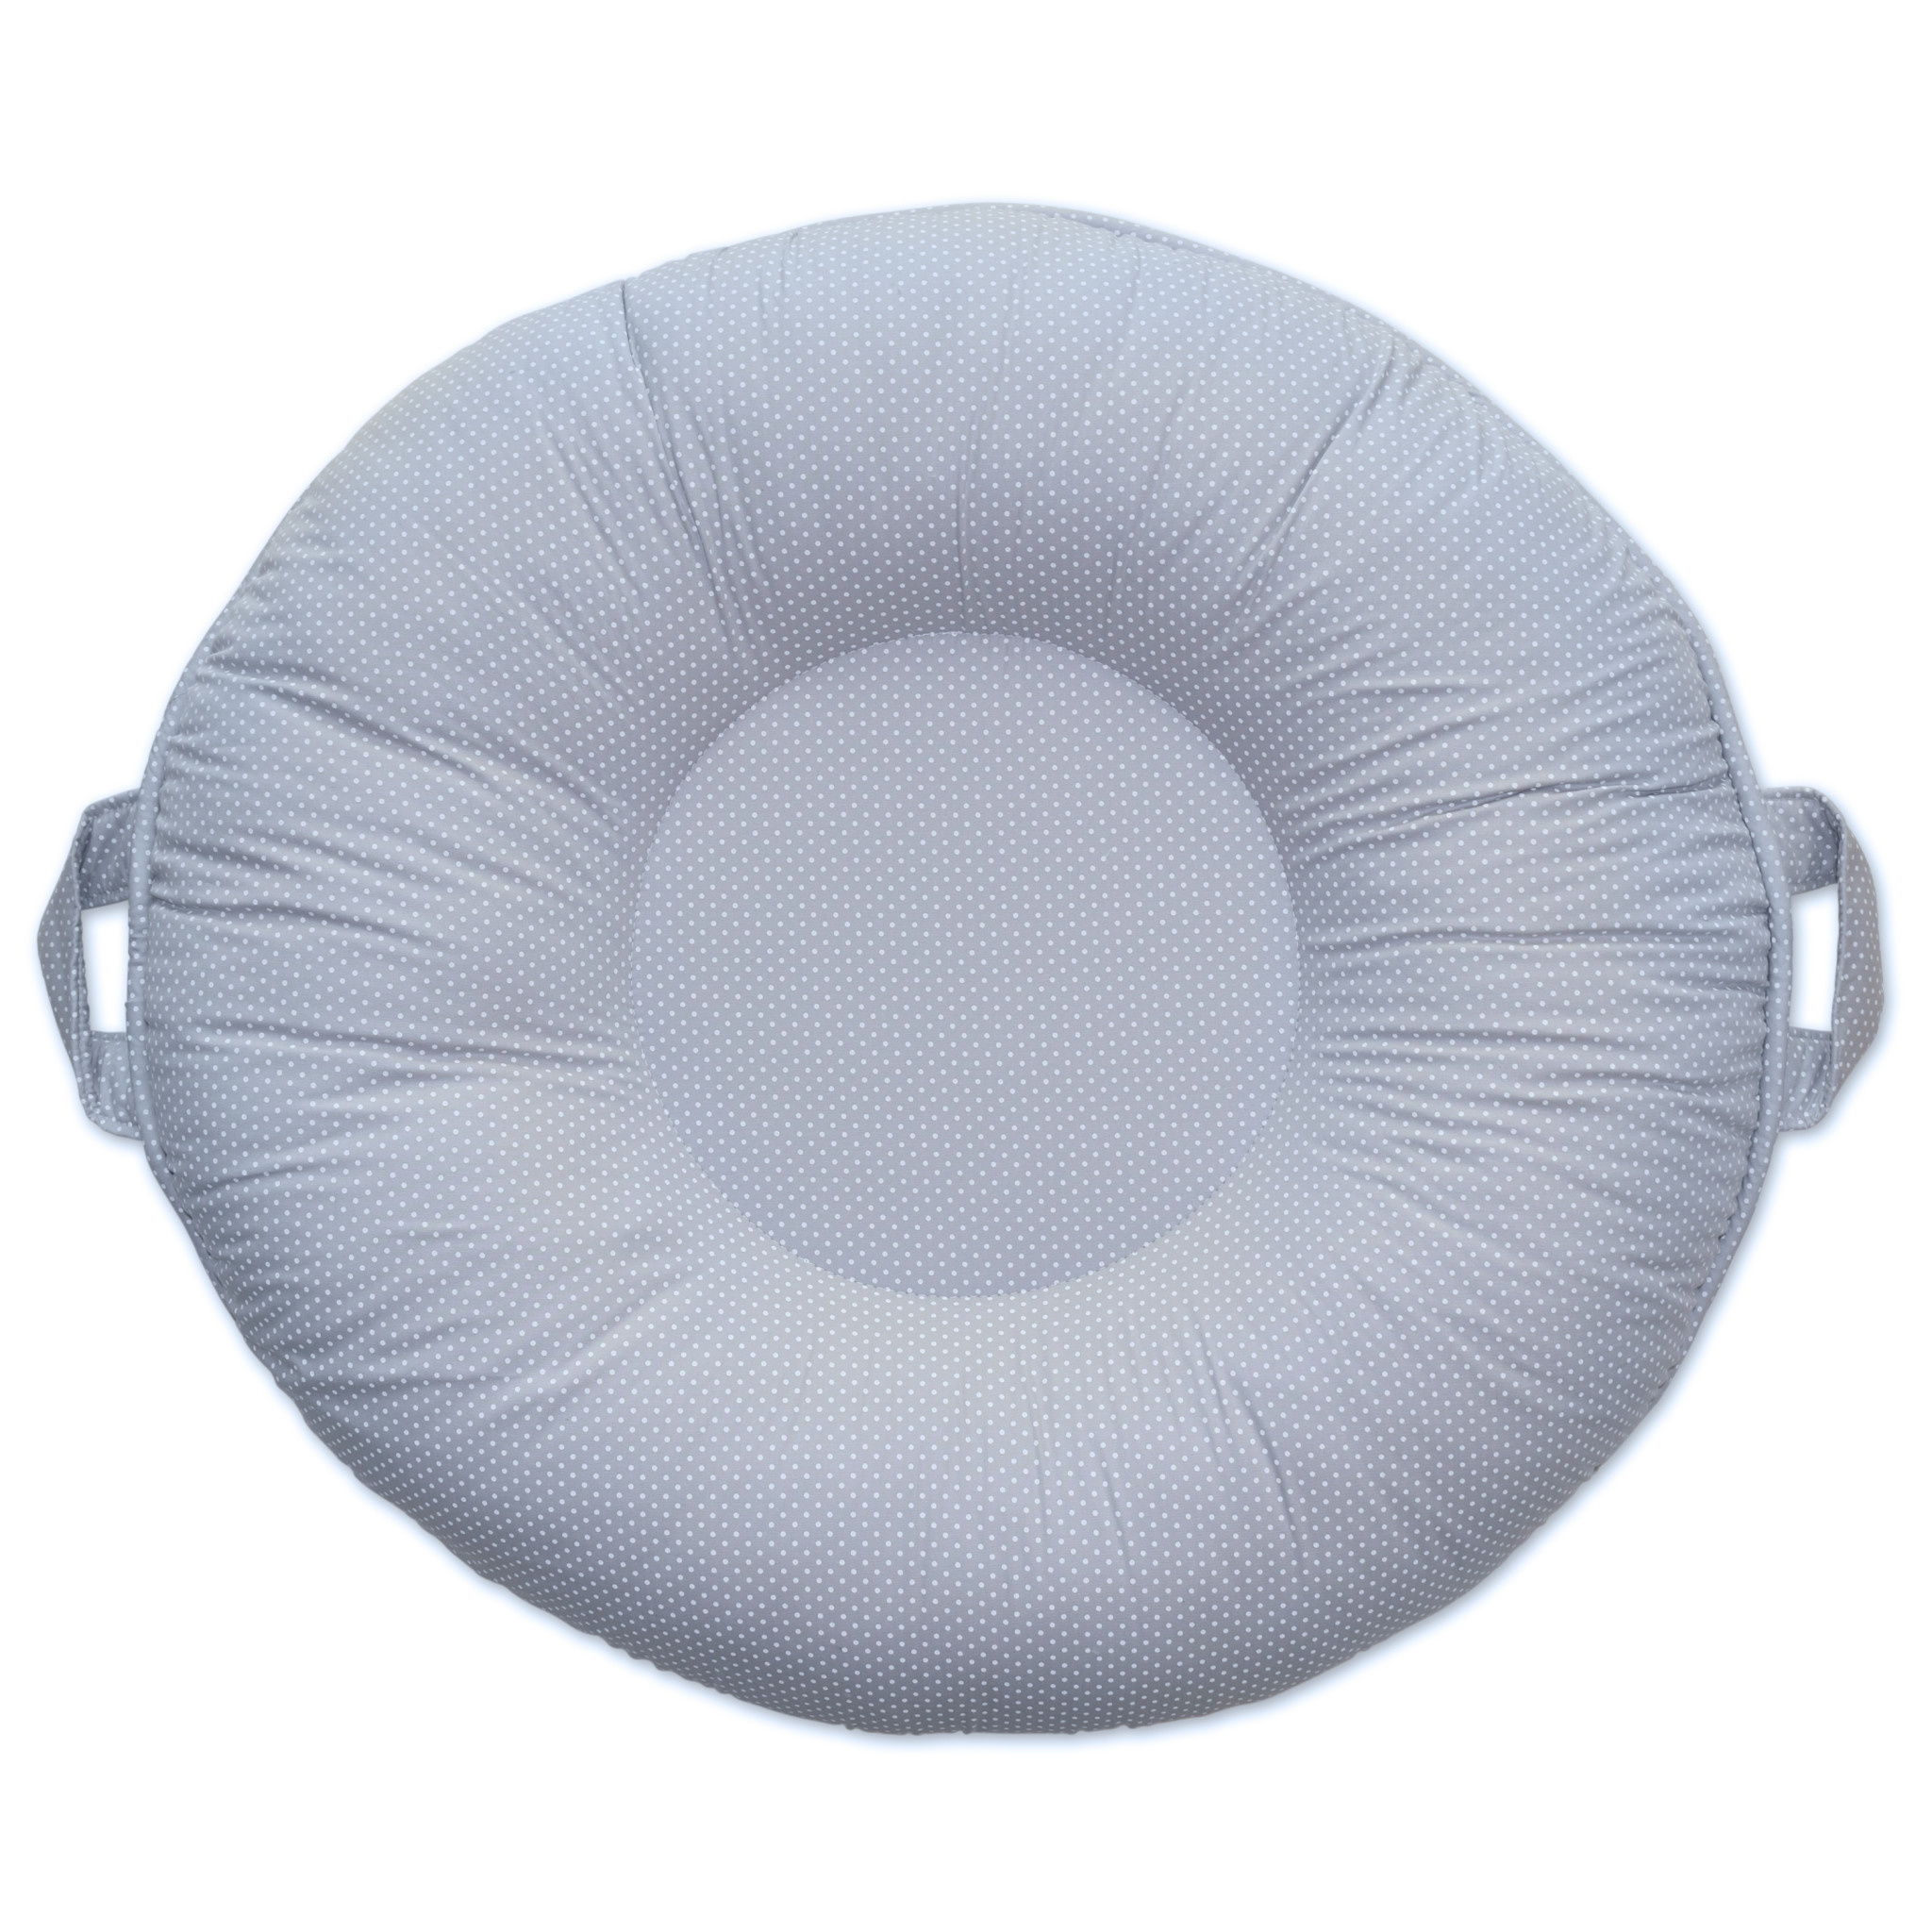 Pello Round Pello Serenity Light Gray